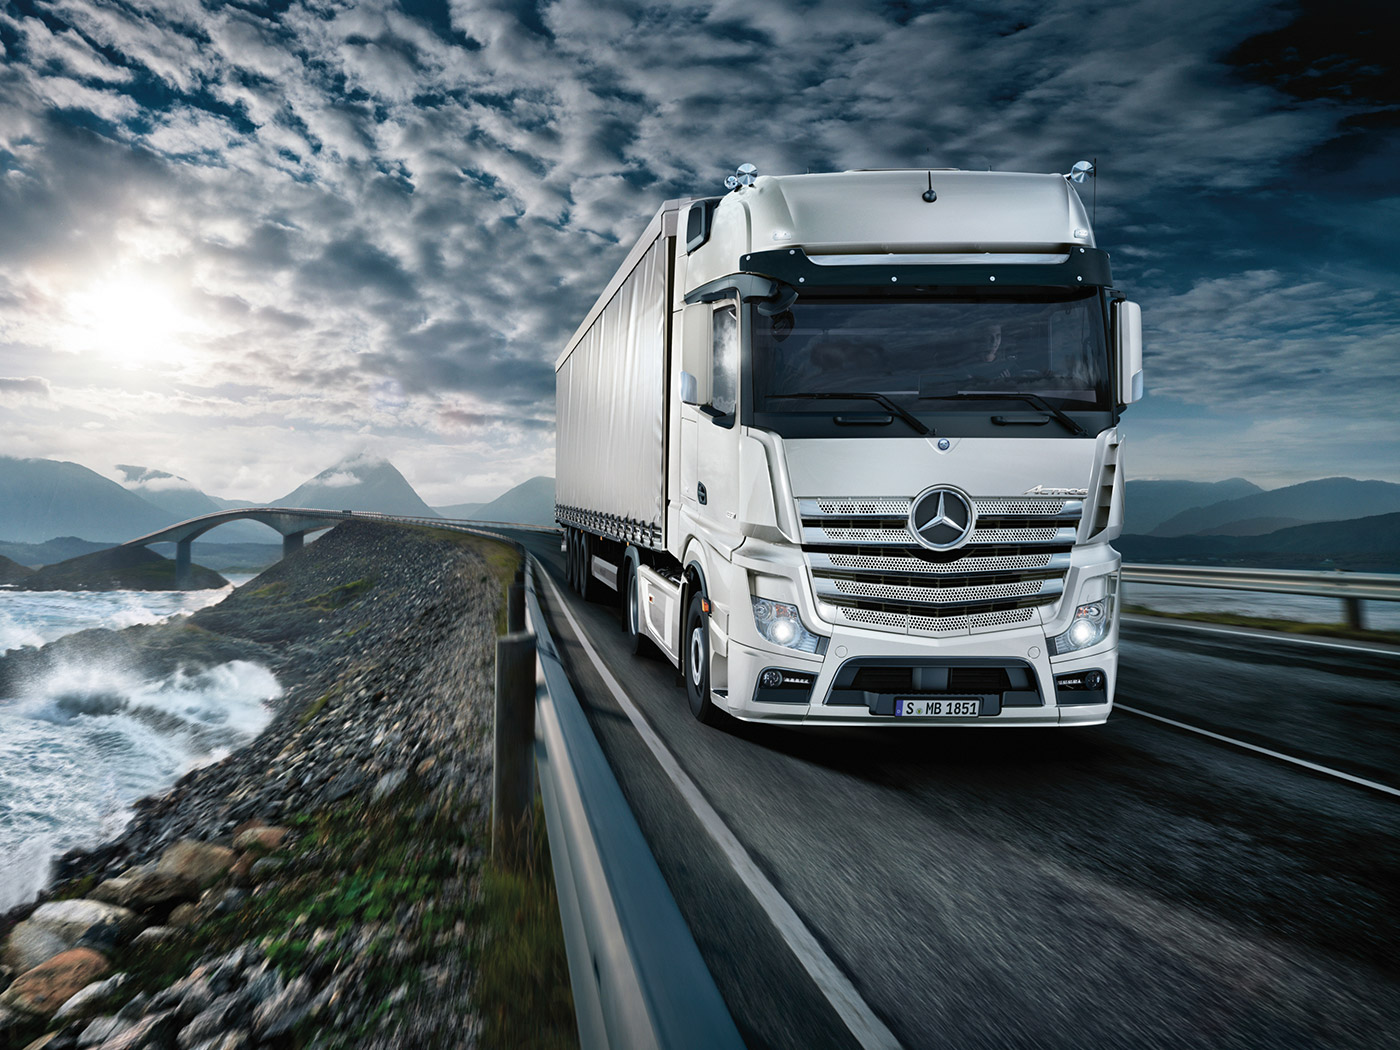 mercedes-benz-actros-wallpapers-32392-5270181